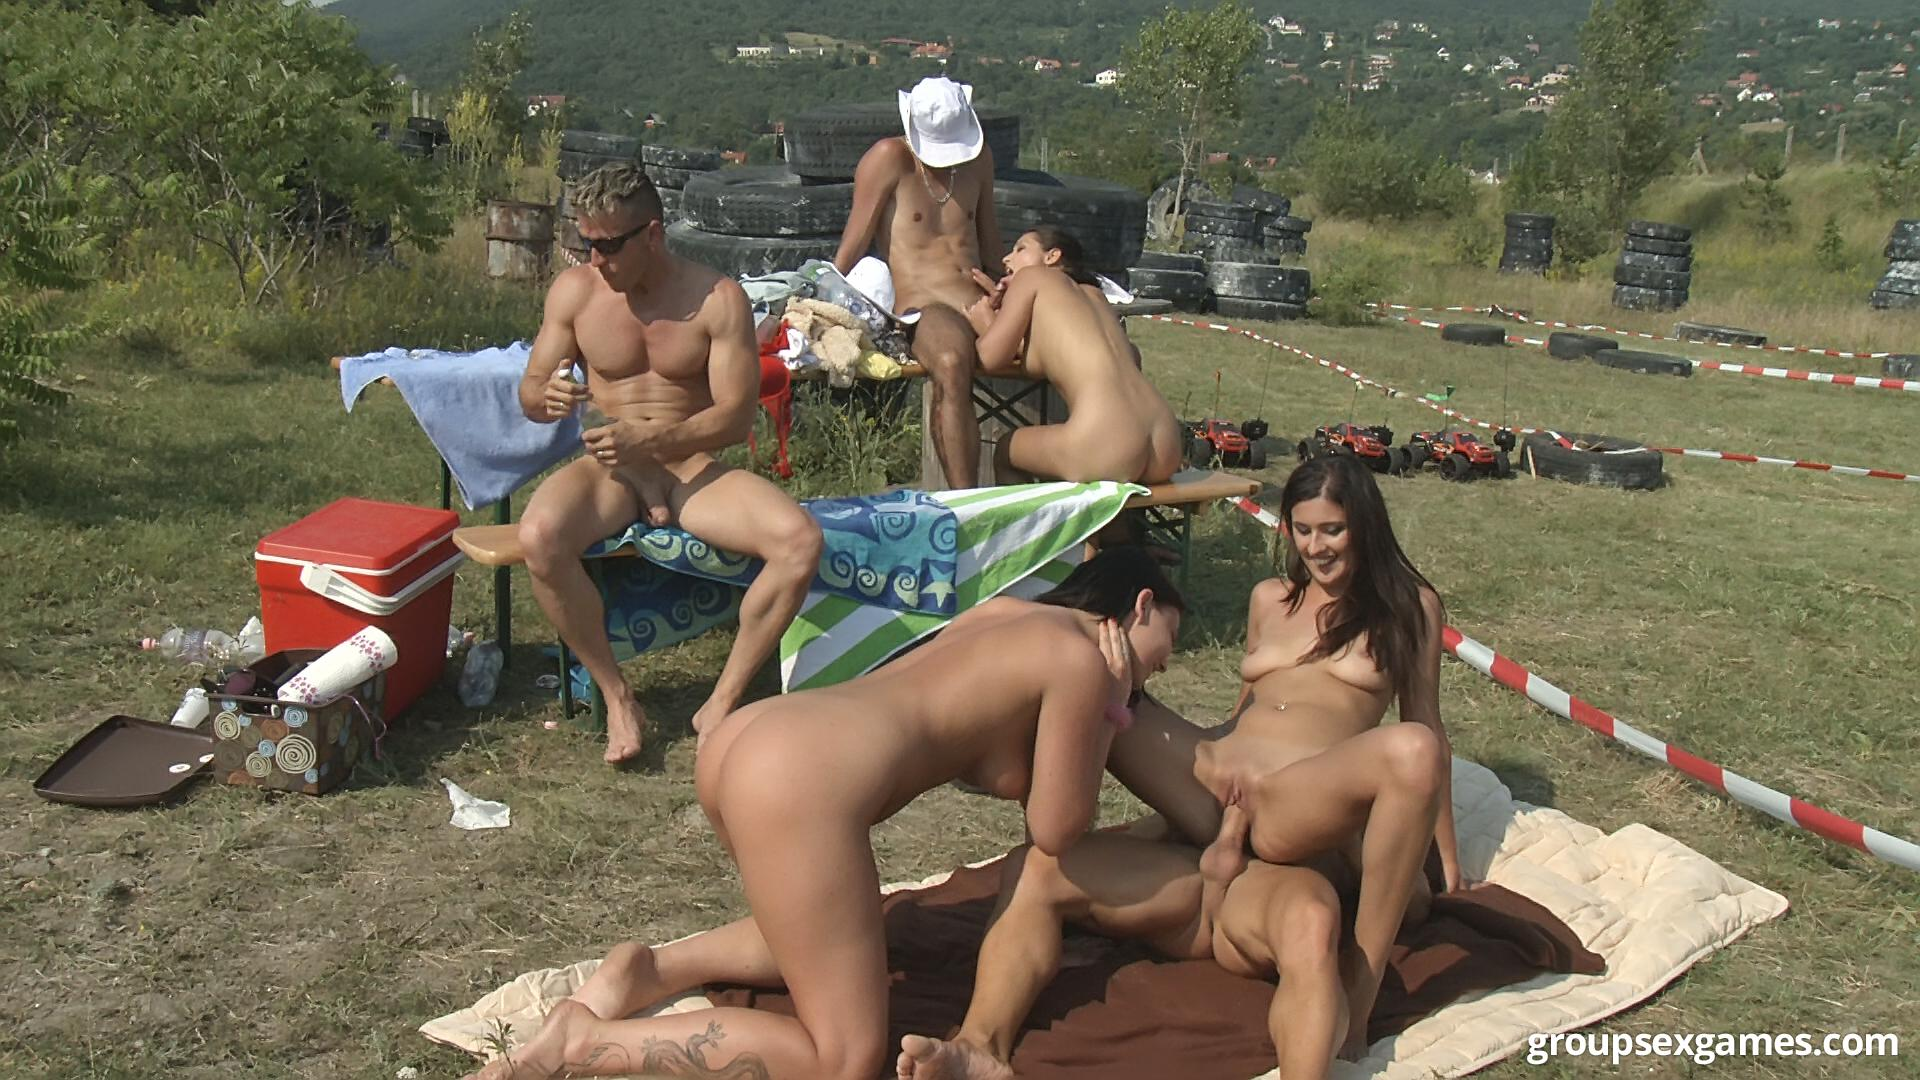 orgy in nude beach